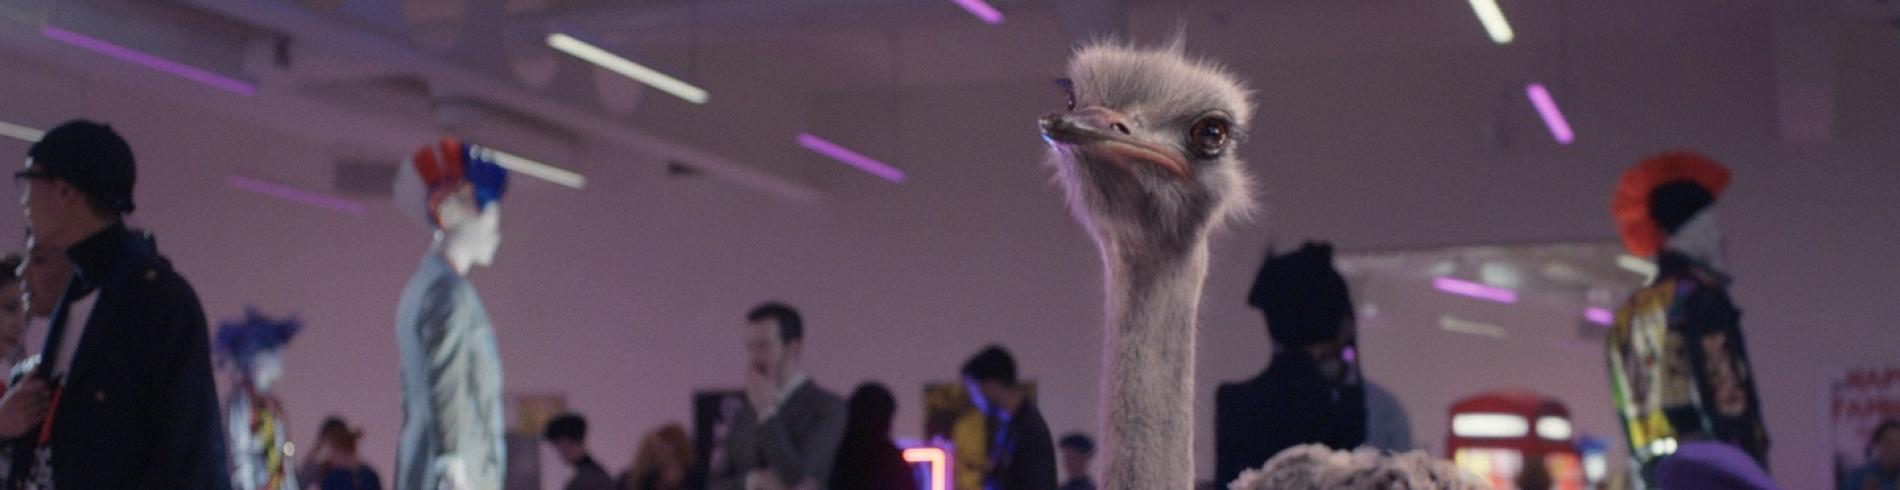 Eurostar frenct tv ad with ostrich in art gallery